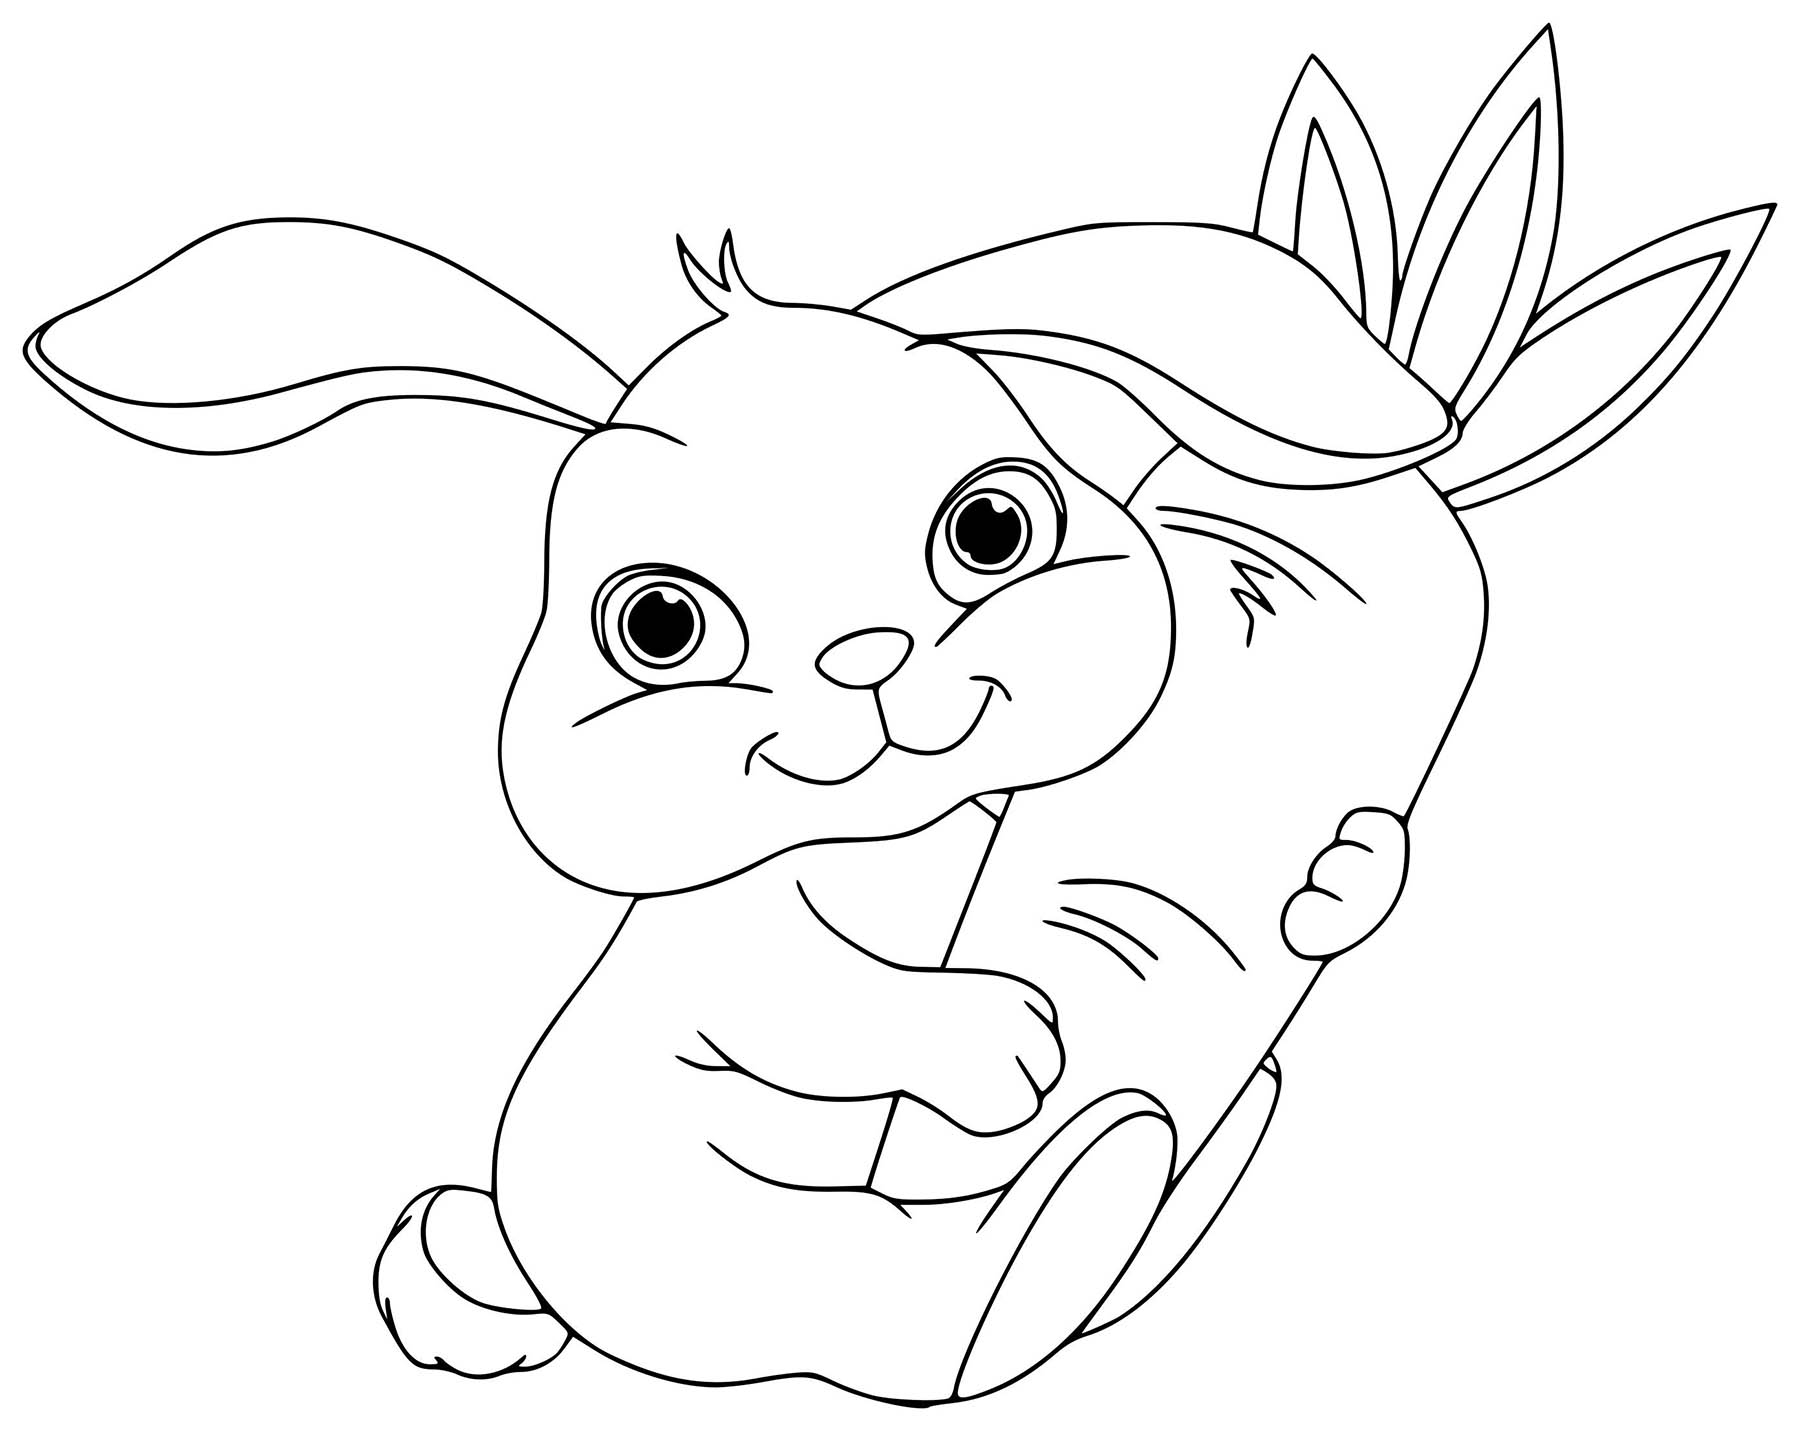 rabbit coloring for kids rabbit to download for free rabbit kids coloring pages for kids rabbit coloring